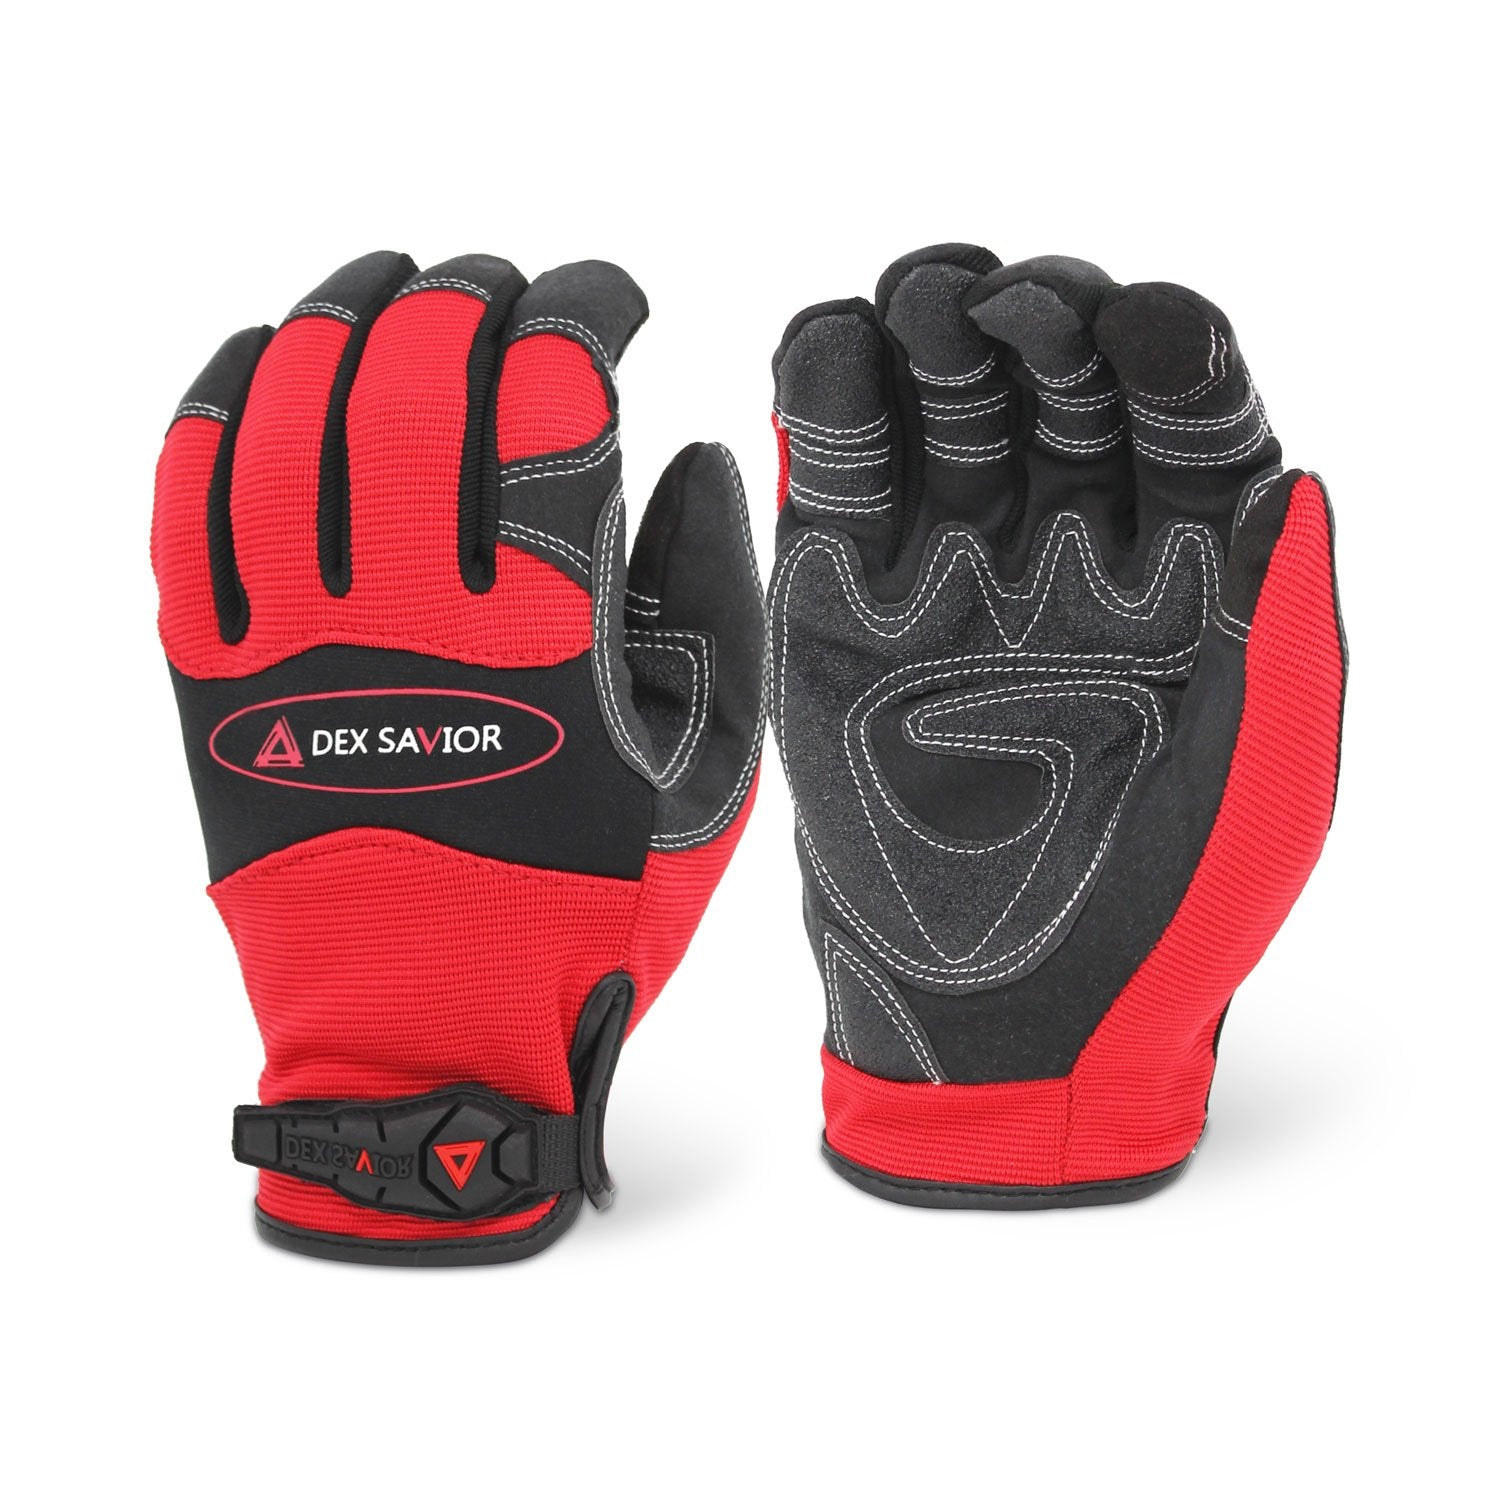 Dex Savior Reinforced Red Mechanic Glove